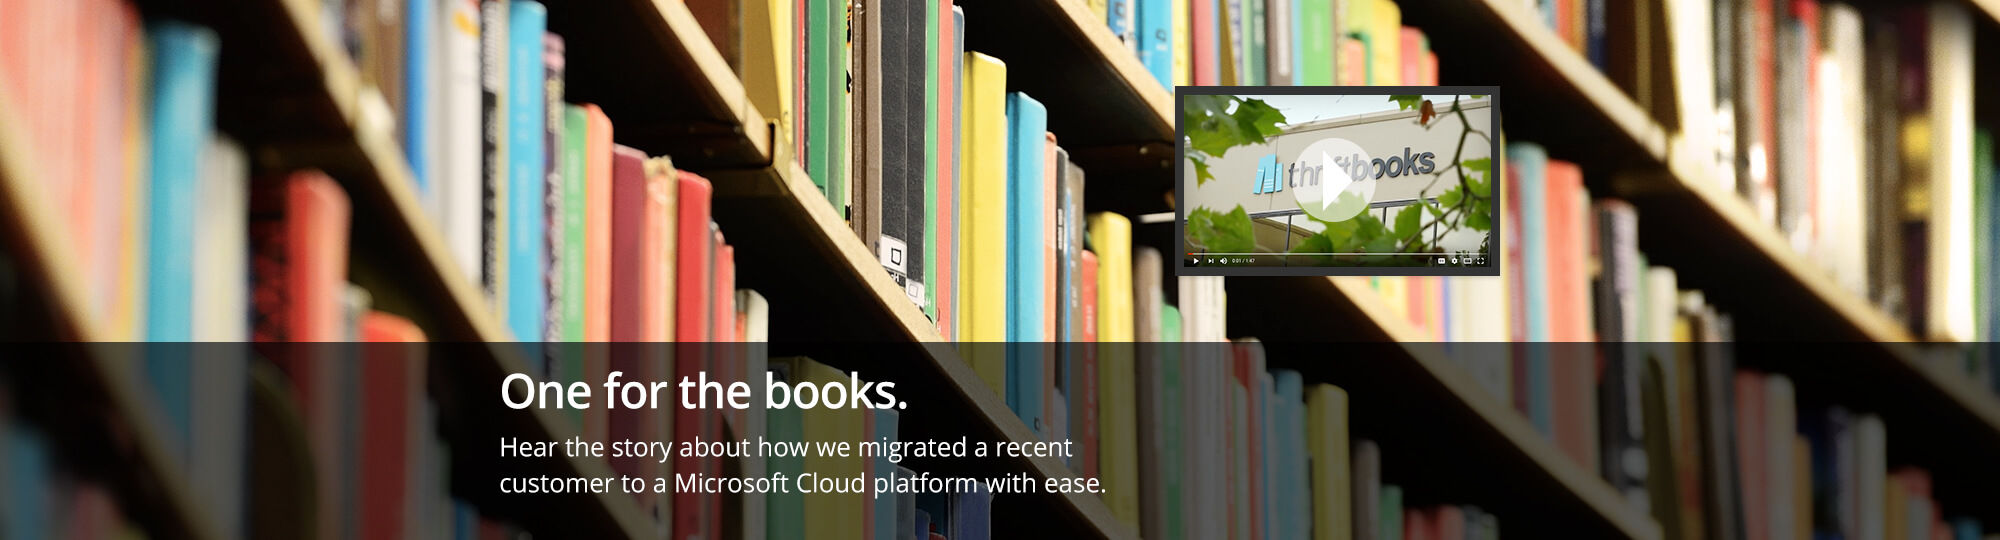 Hear the story about how we migrated a recent customer to a Microsoft Cloud platform with ease.